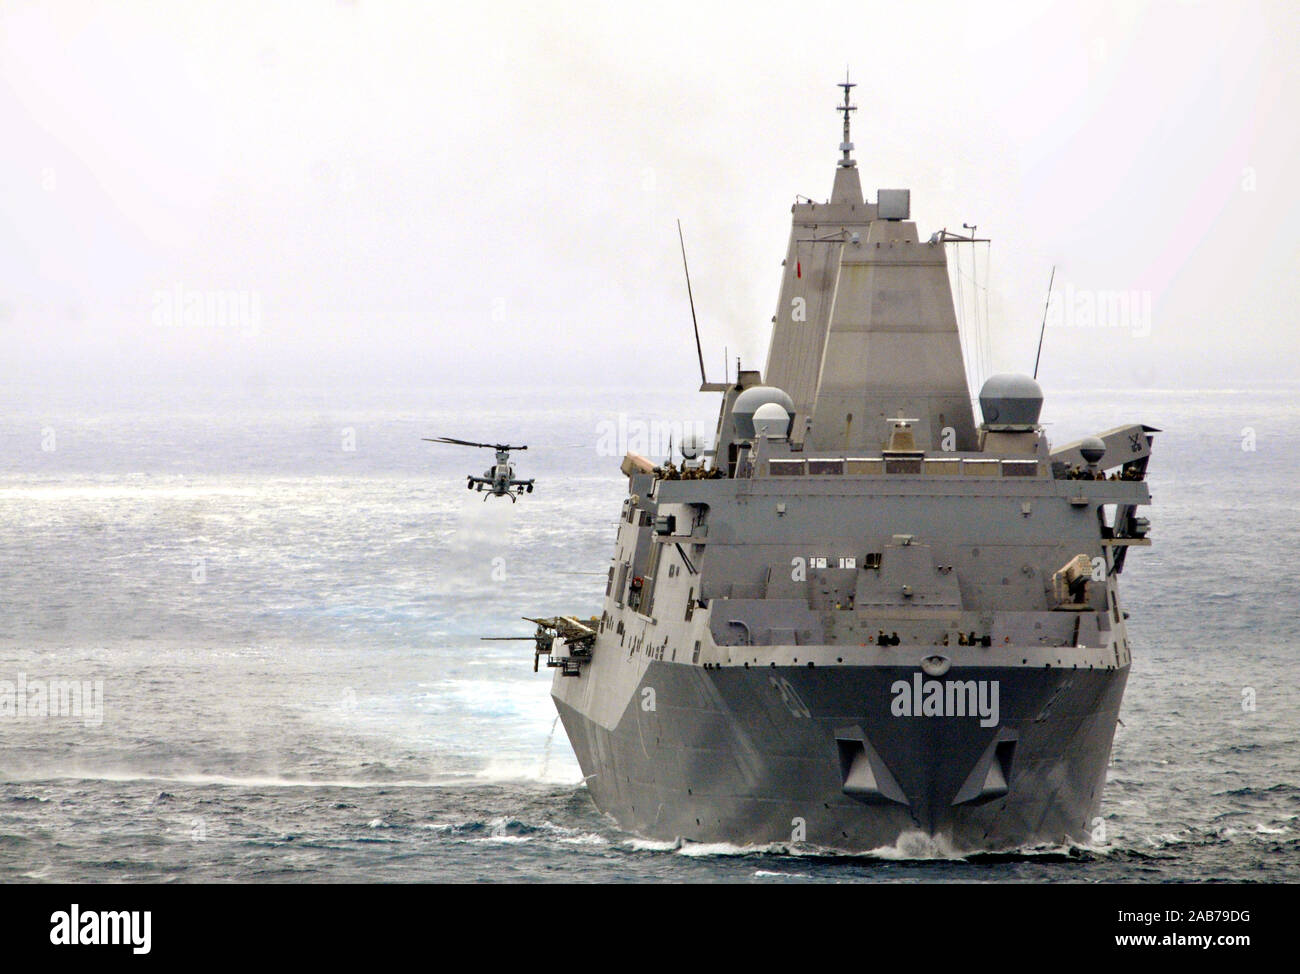 "(July 21, 2012) An AH-1Z Viper helicopter assigned to the ""Purple Foxes"" of Marine Medium Helicopter Squadron 364 (Reinforced), approaches the amphibious transport dock ship USS Green Bay (LPD 20) during a composite unit training exercise (COMPTUEX). Stock Photo"